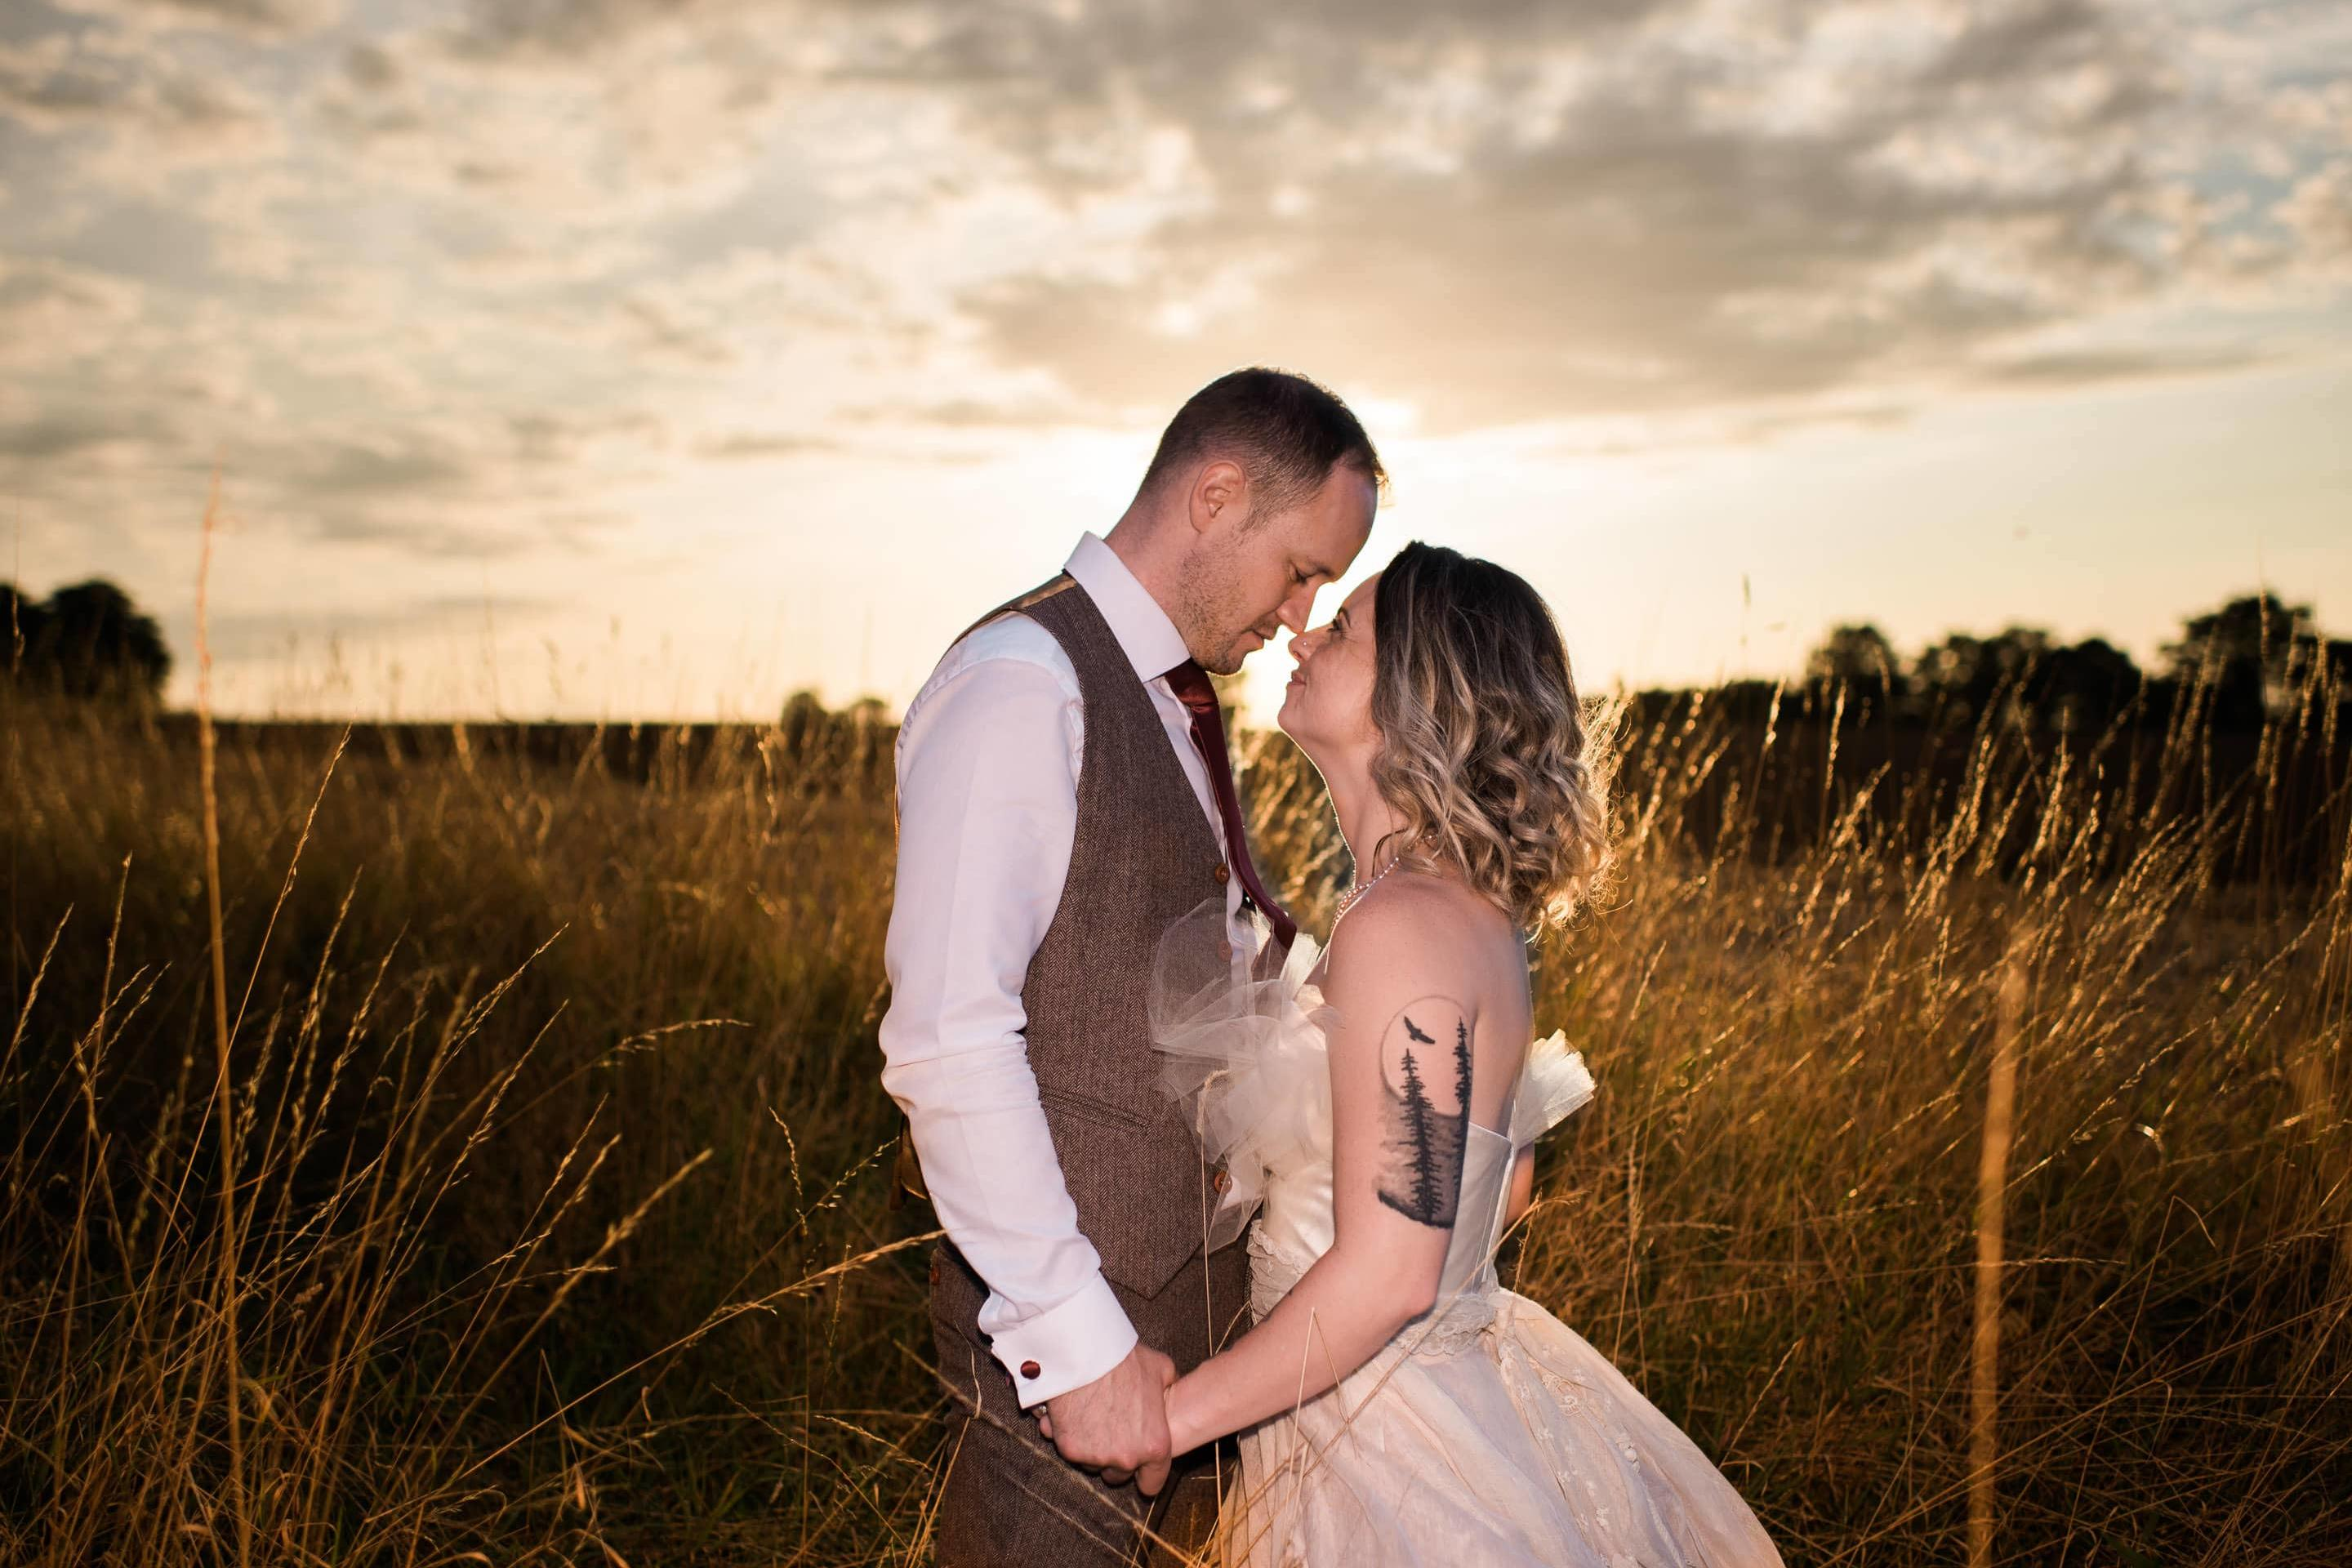 How to Get the Most Out of Your Wedding Photographer 3